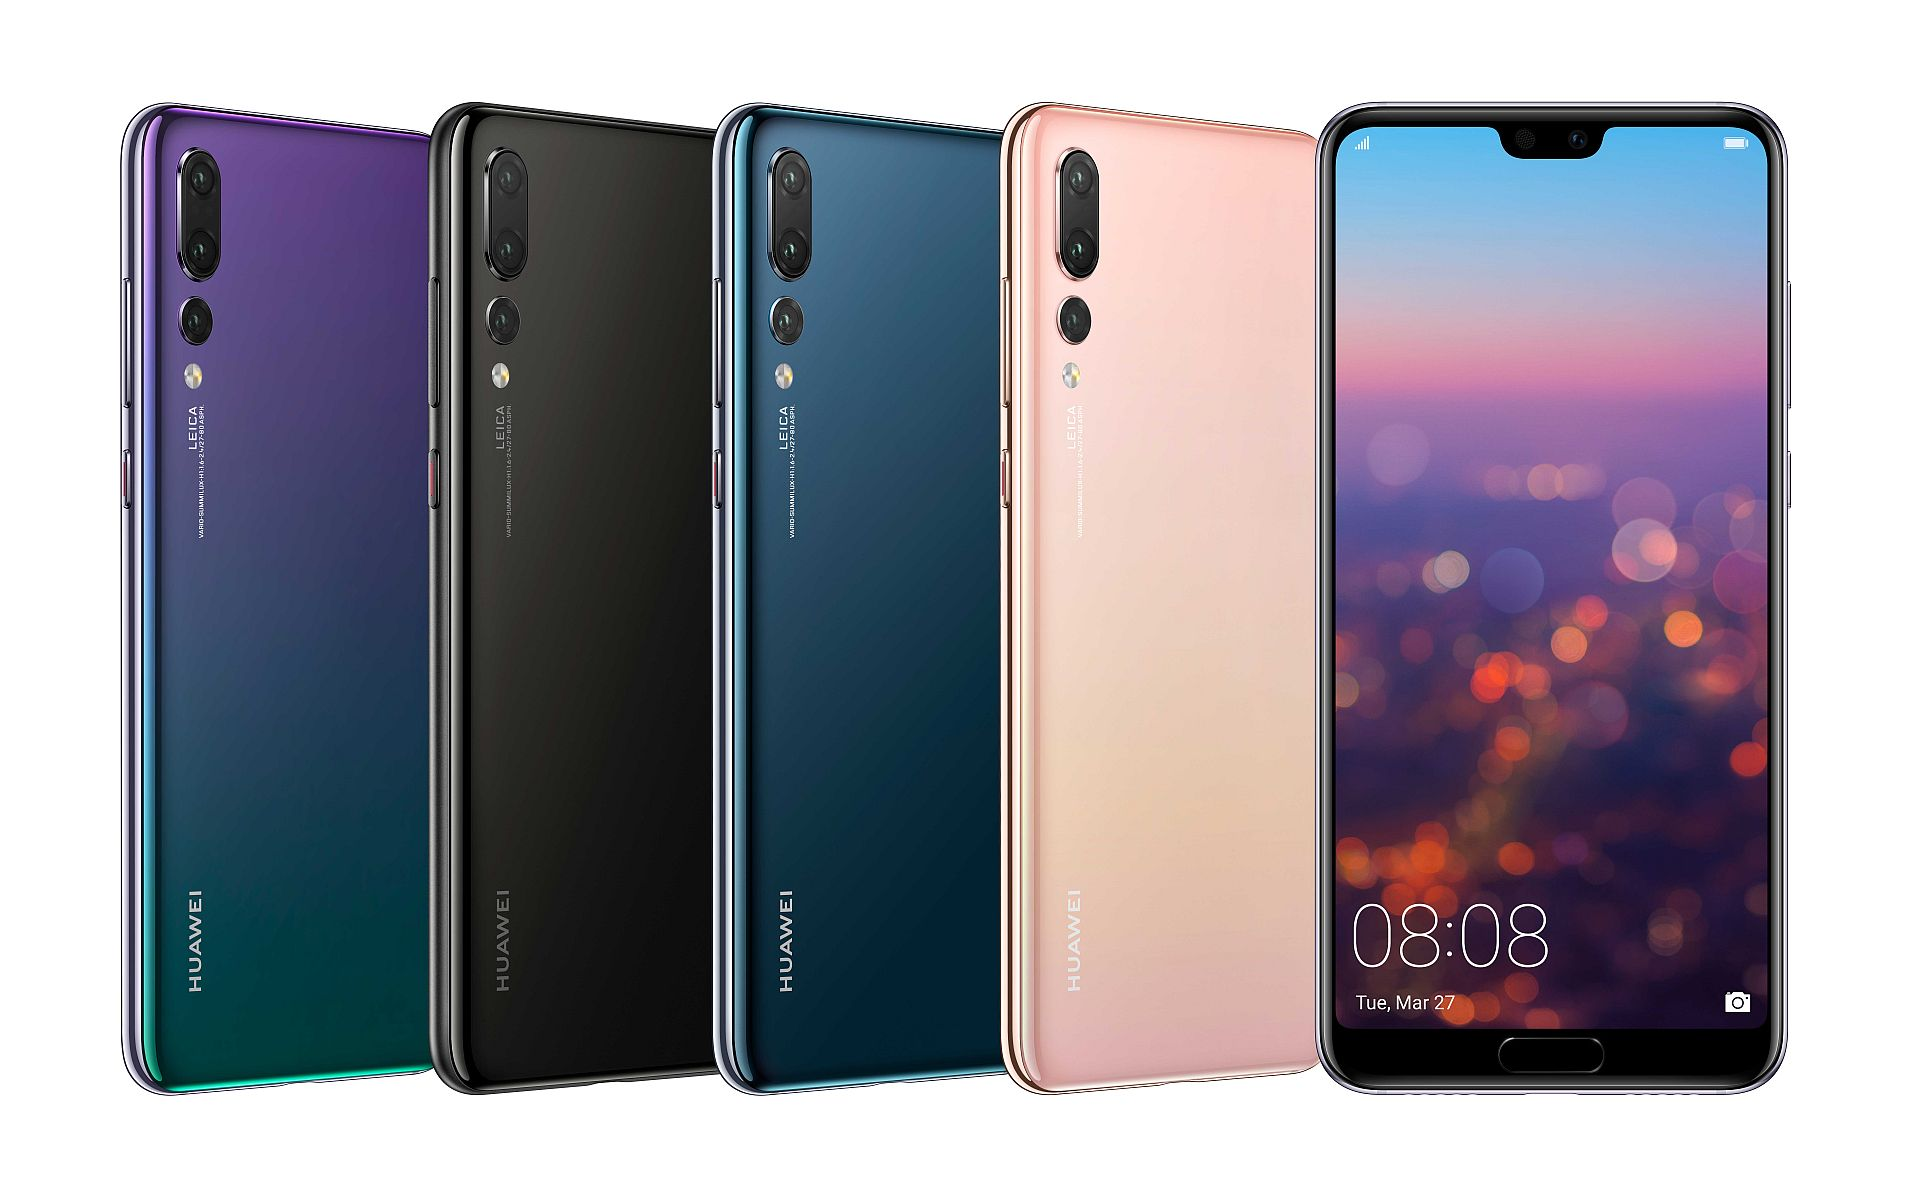 Smartphones Buy Cell Phones Online At Low Prices Huawei P20 Pro Mate 10 Pro Epey 4 8 6 Slick Here Pictures And Get Coupon